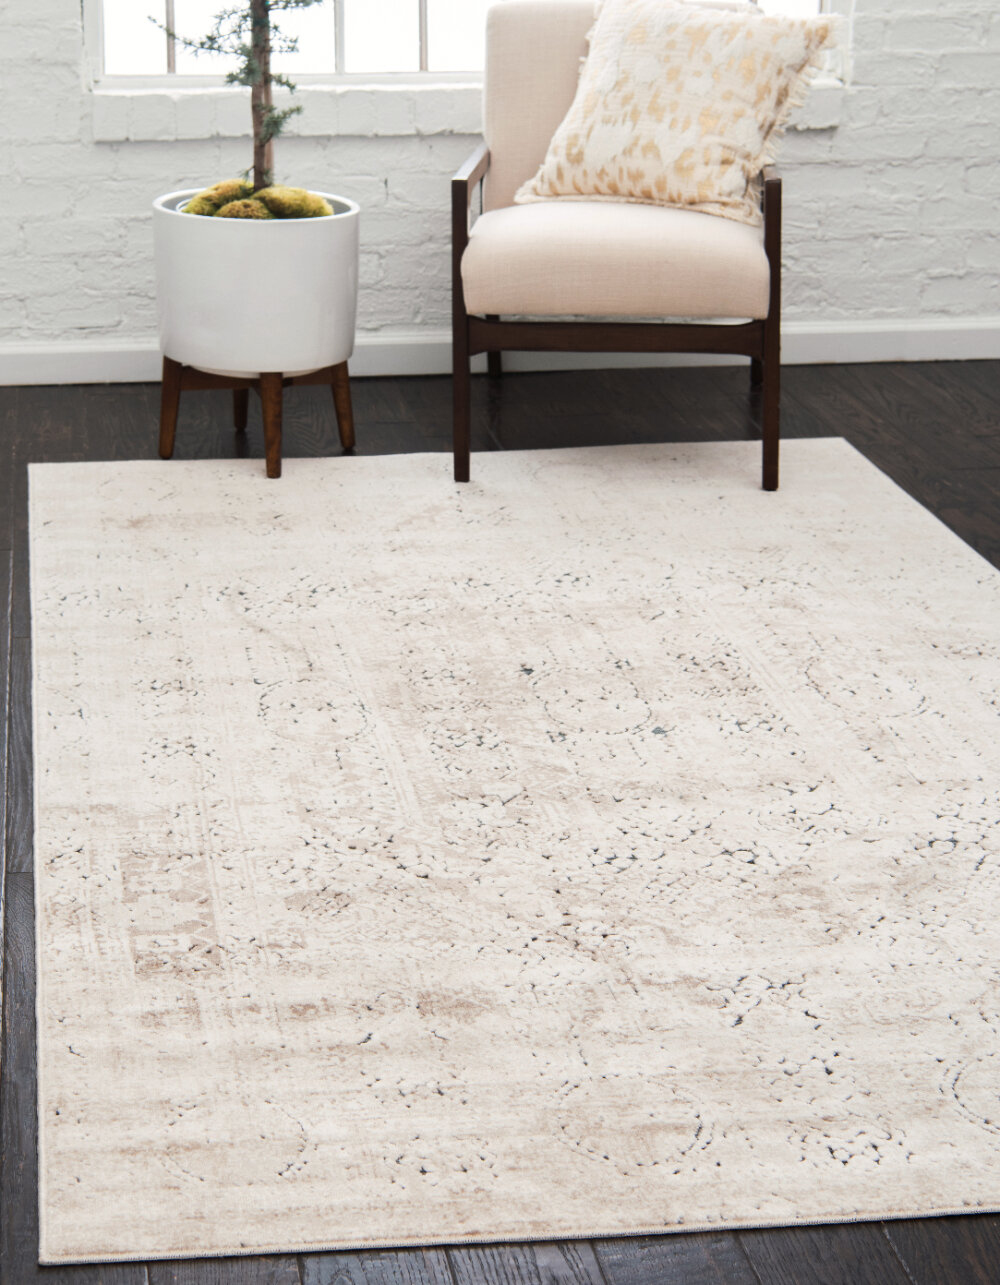 Chenille Ivory Cream Area Rugs You Ll Love In 2021 Wayfair